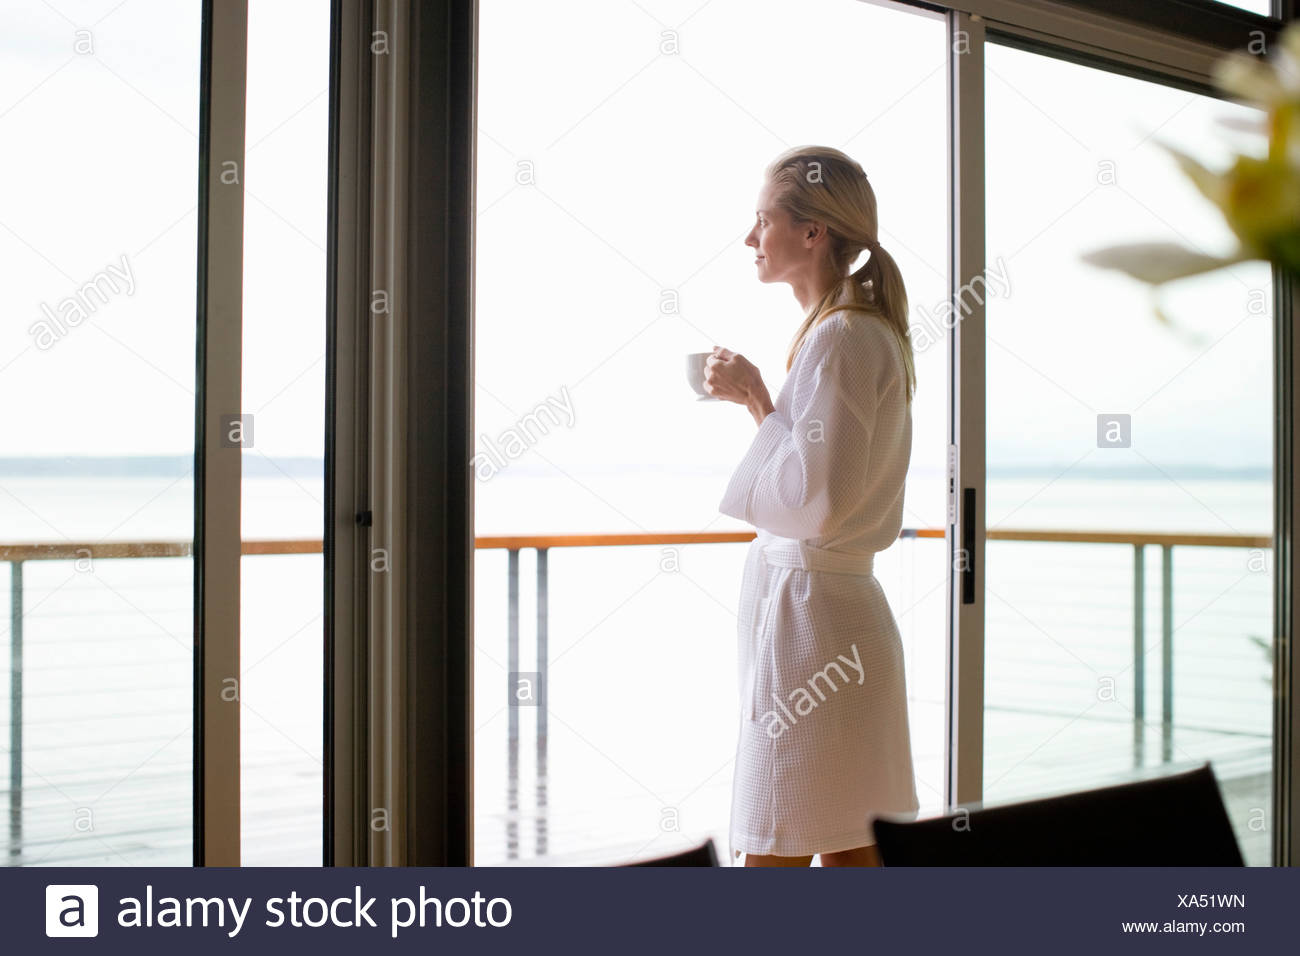 Woman Looking Out Glass Door Stock Photo 281623713 Alamy